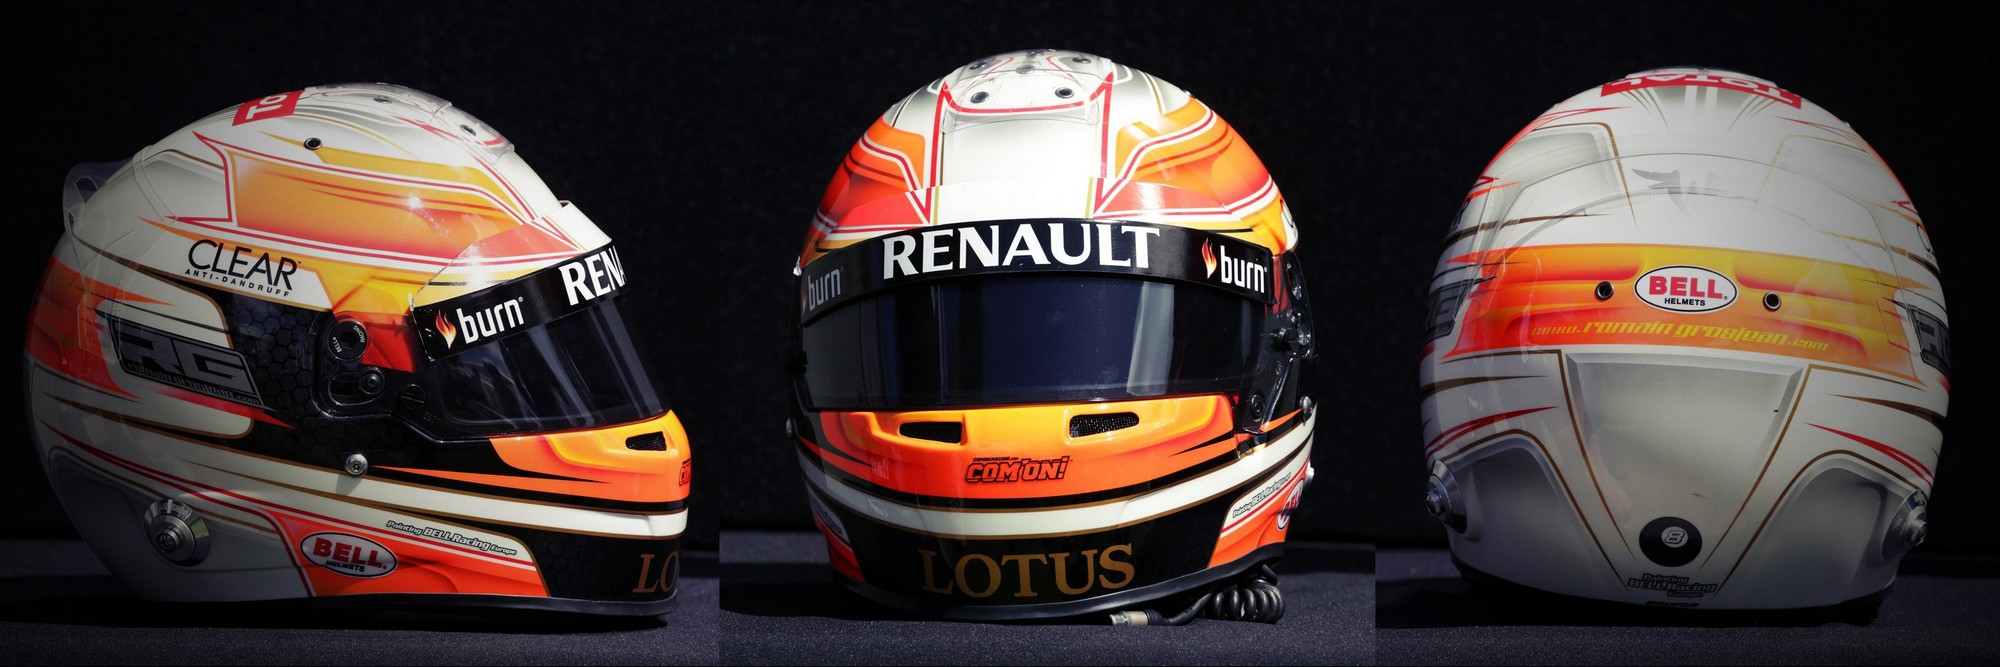 Шлем Романа Грожана на сезон 2011 года | 2011 helmet of Romain Grosjean